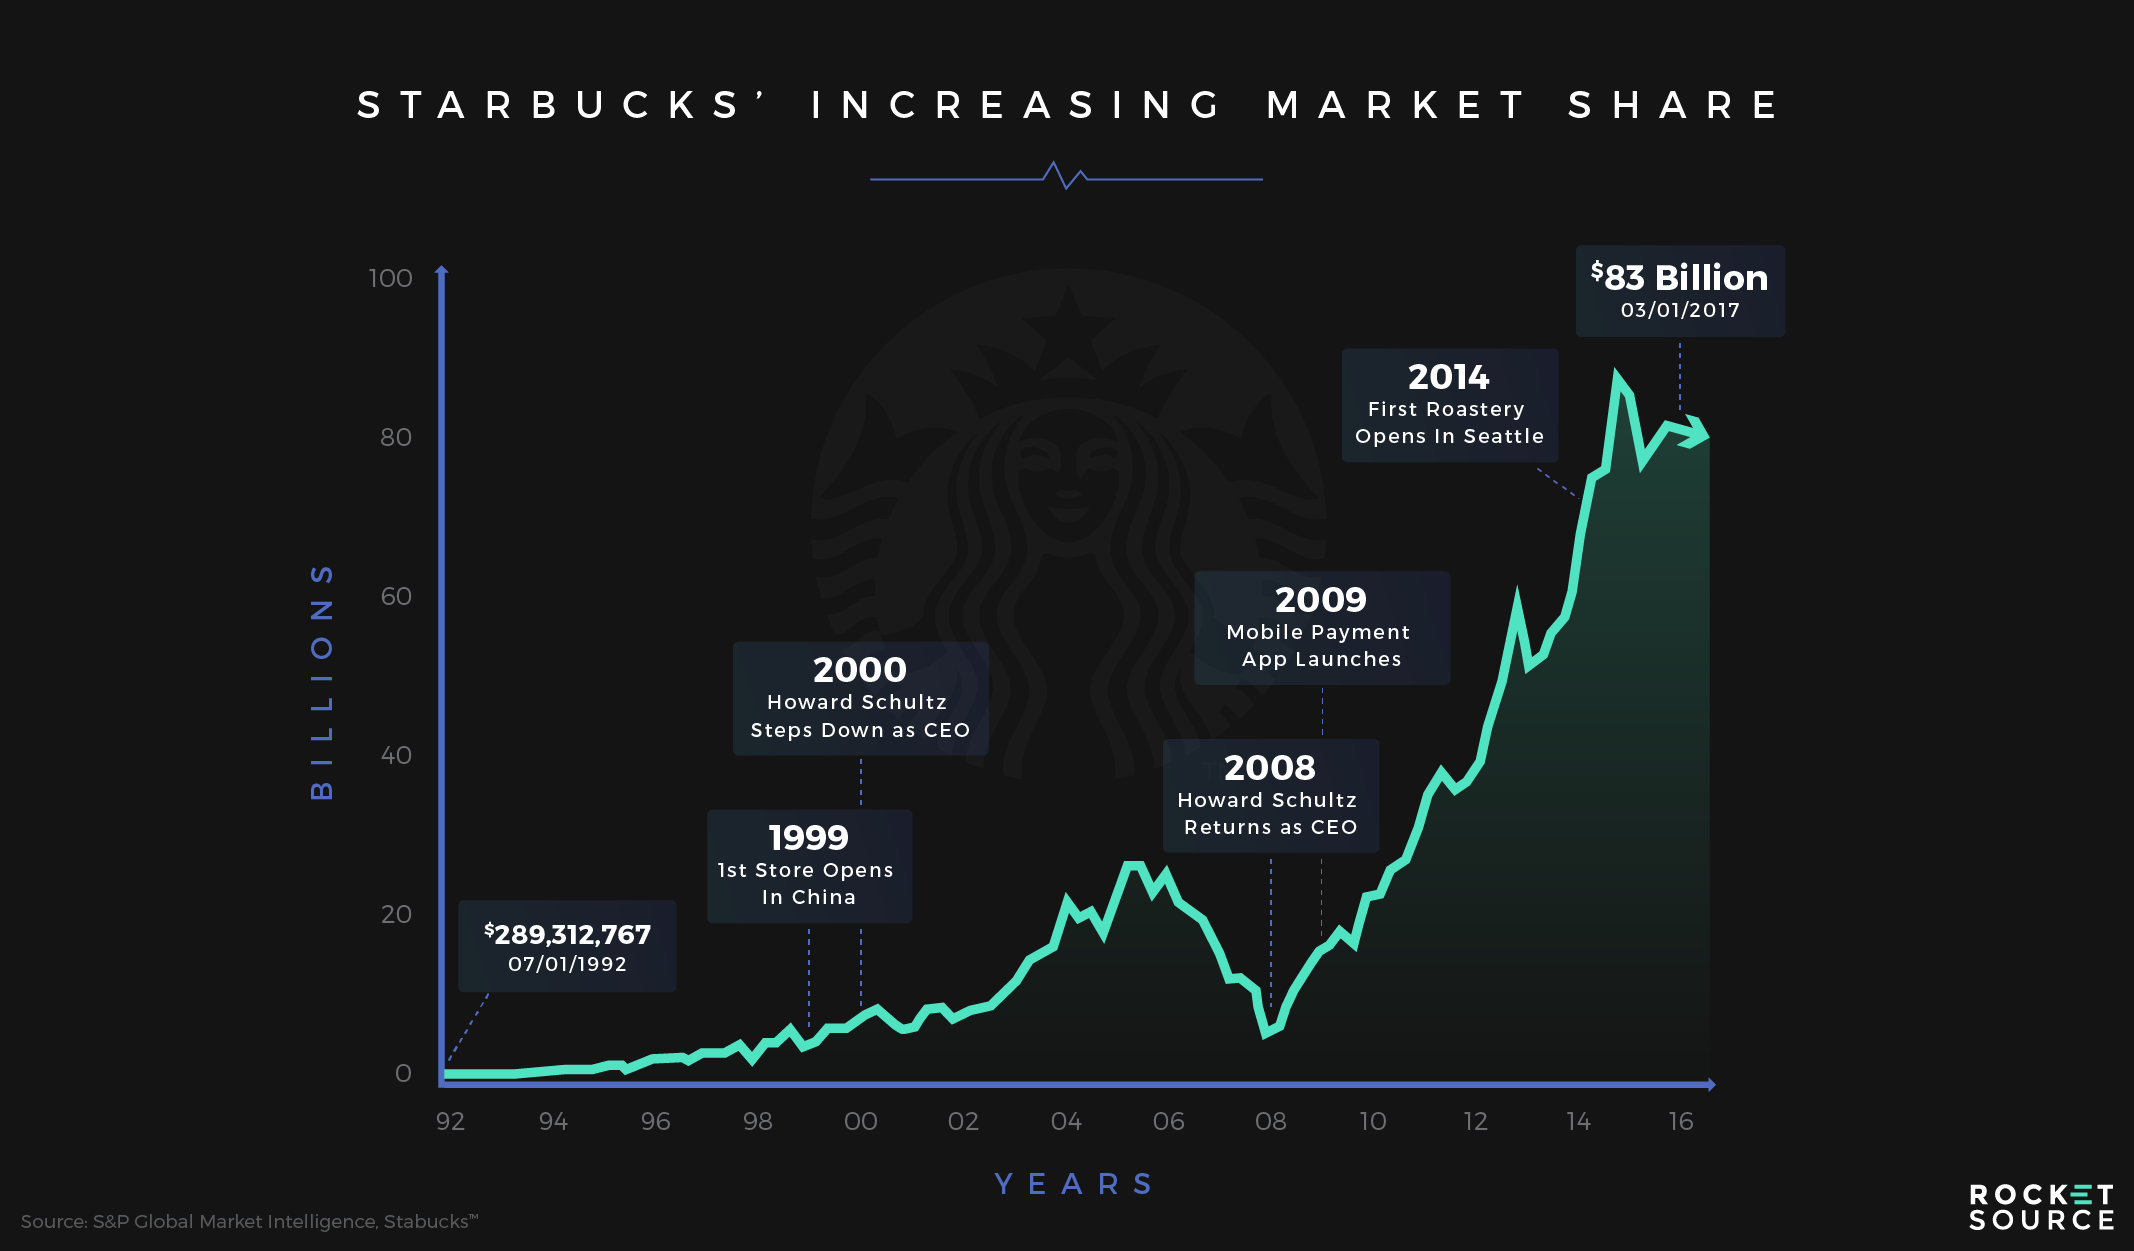 Recession Business Strategy: Starbucks' Growth